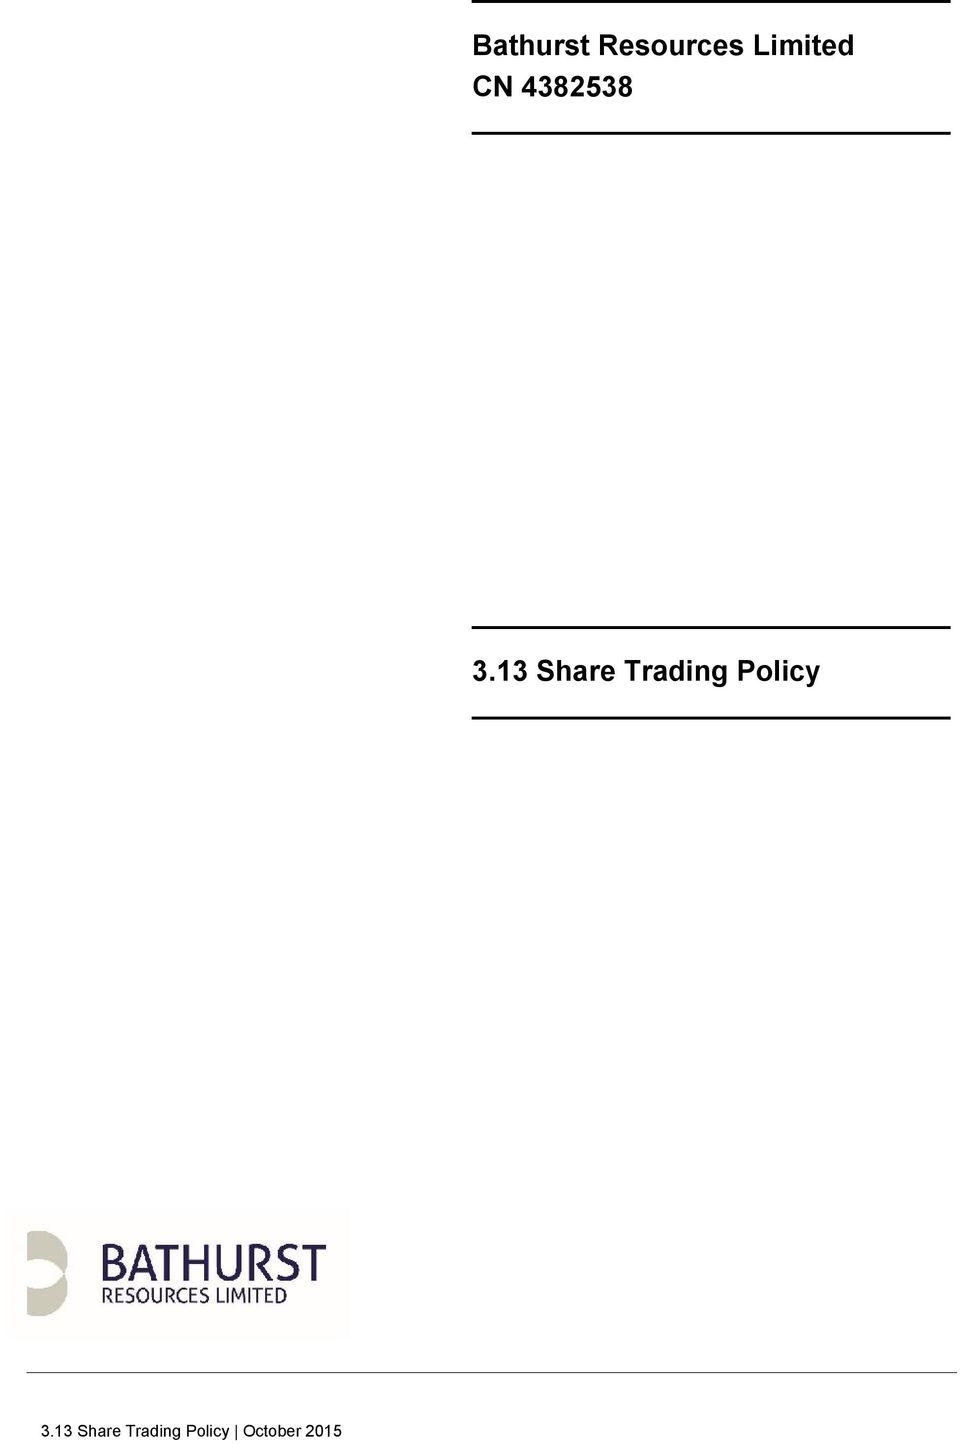 13 Share Trading Policy 3.